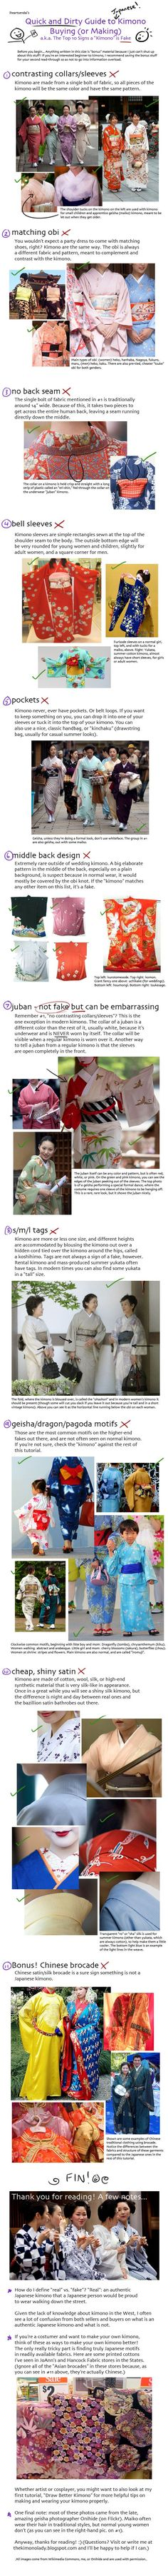 Tutorial: Real or Fake Kimono? by iheartsendai.deviantart.com on @deviantART - Some great tips for anyone who wants to go shopping for a kimono - in other words, how not to get caught in a tourist trap :P: